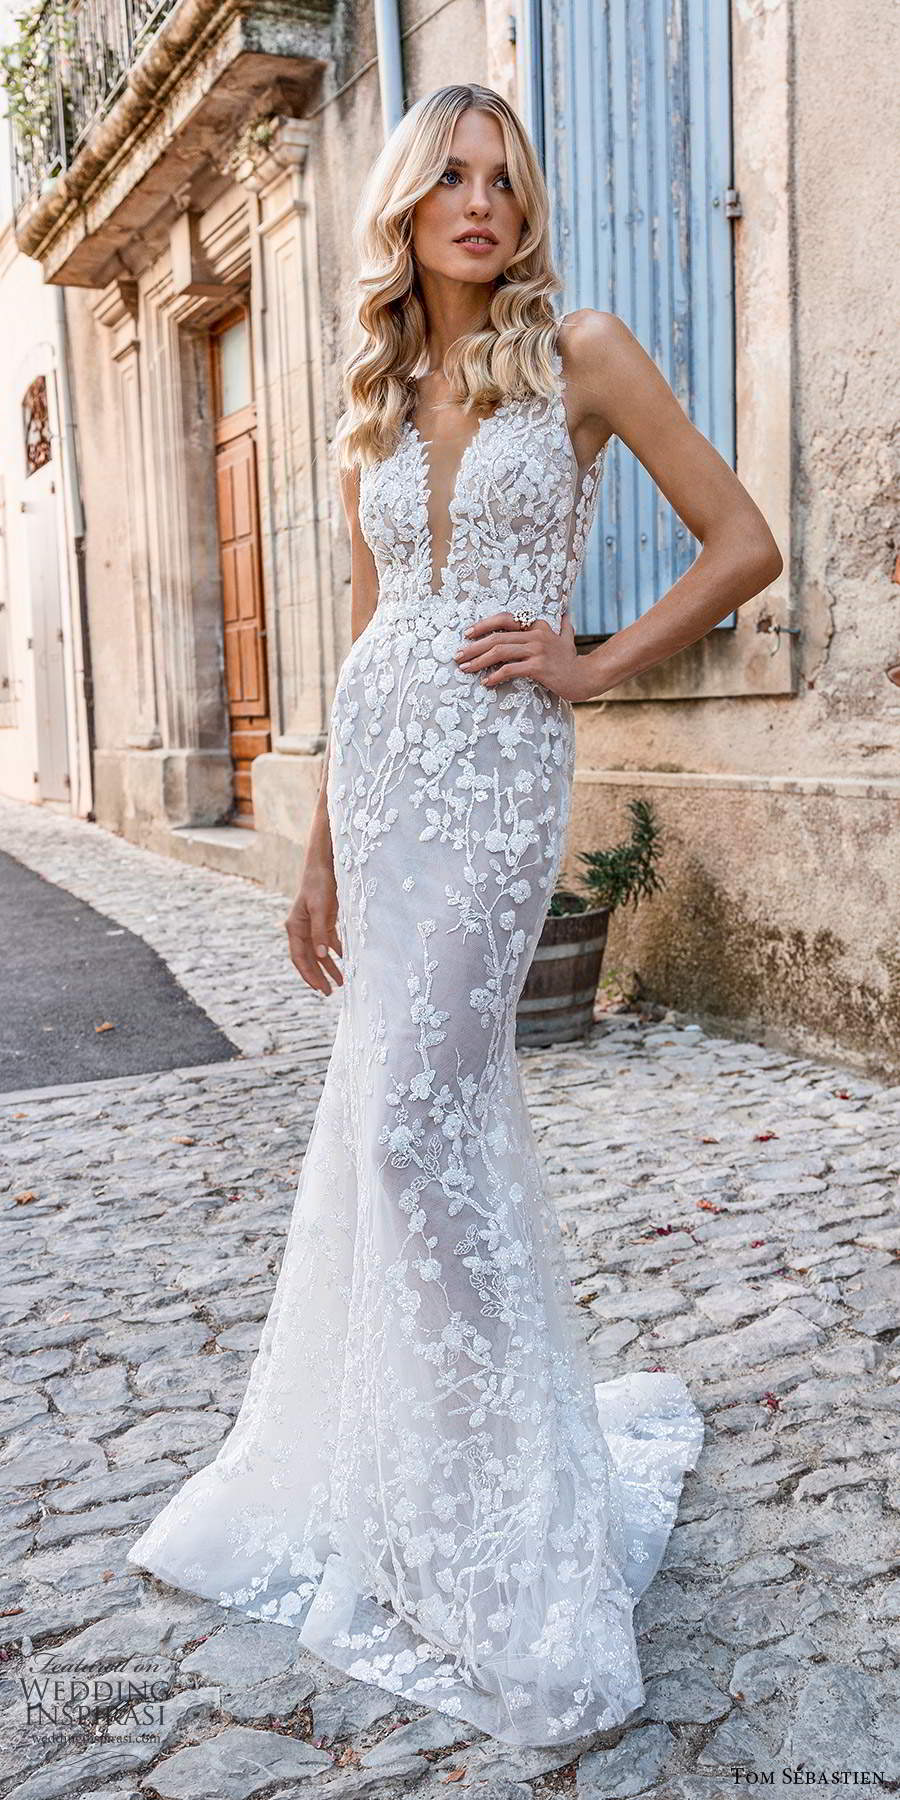 tom sebastien 2021 bridal provence sleeveless straps plunging v neckline fully embellished lace wedding dress sweep train (3) lv